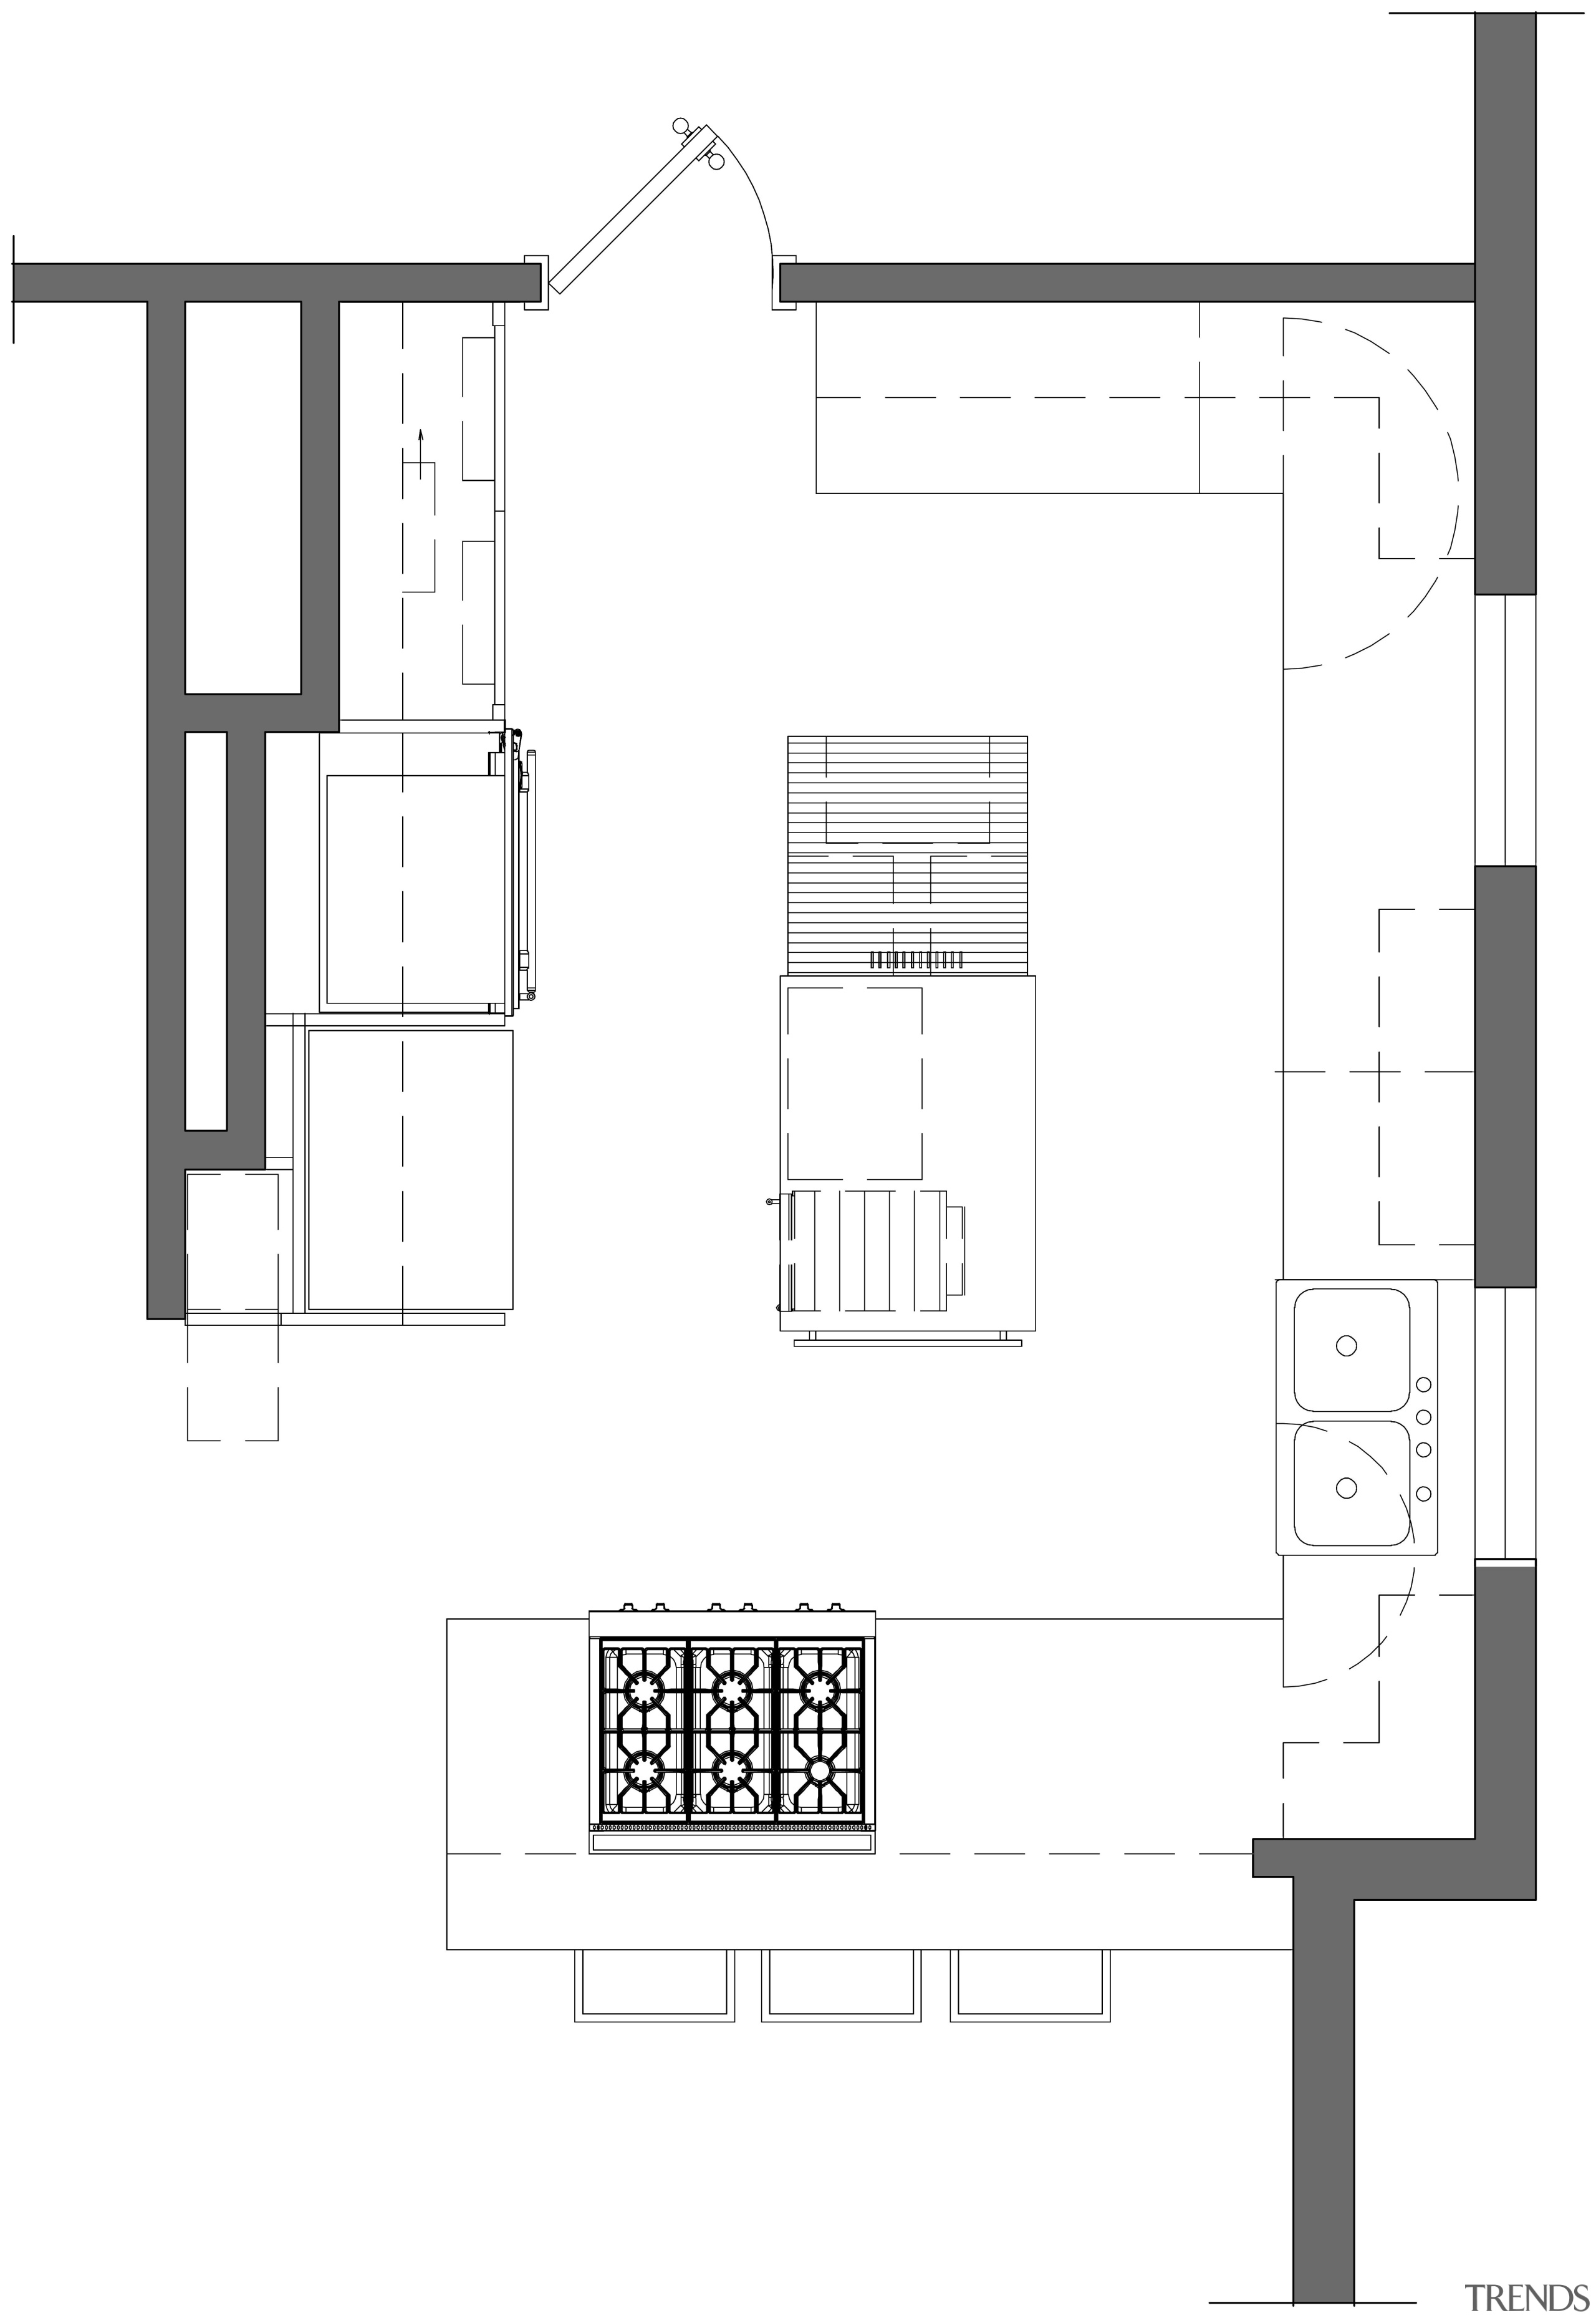 View of remodeled kitchen with rainforest green marble angle, architecture, area, black and white, design, diagram, drawing, floor plan, font, furniture, line, plan, product, product design, square, structure, text, white